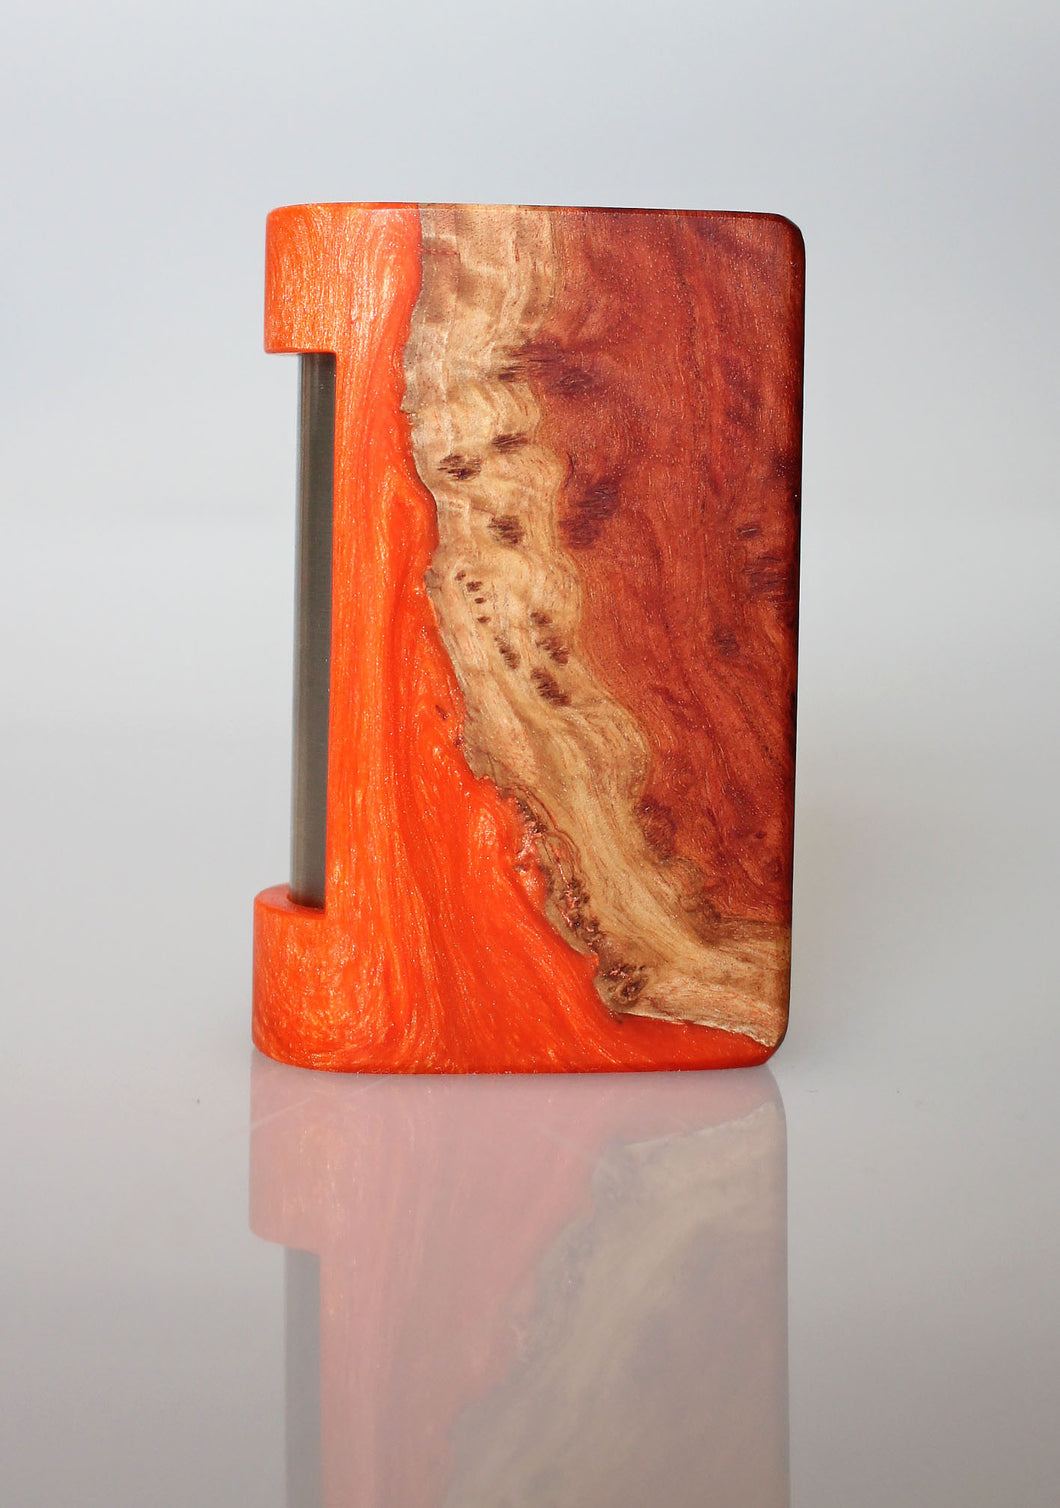 Hybrid Burr Wood RSM DNA75